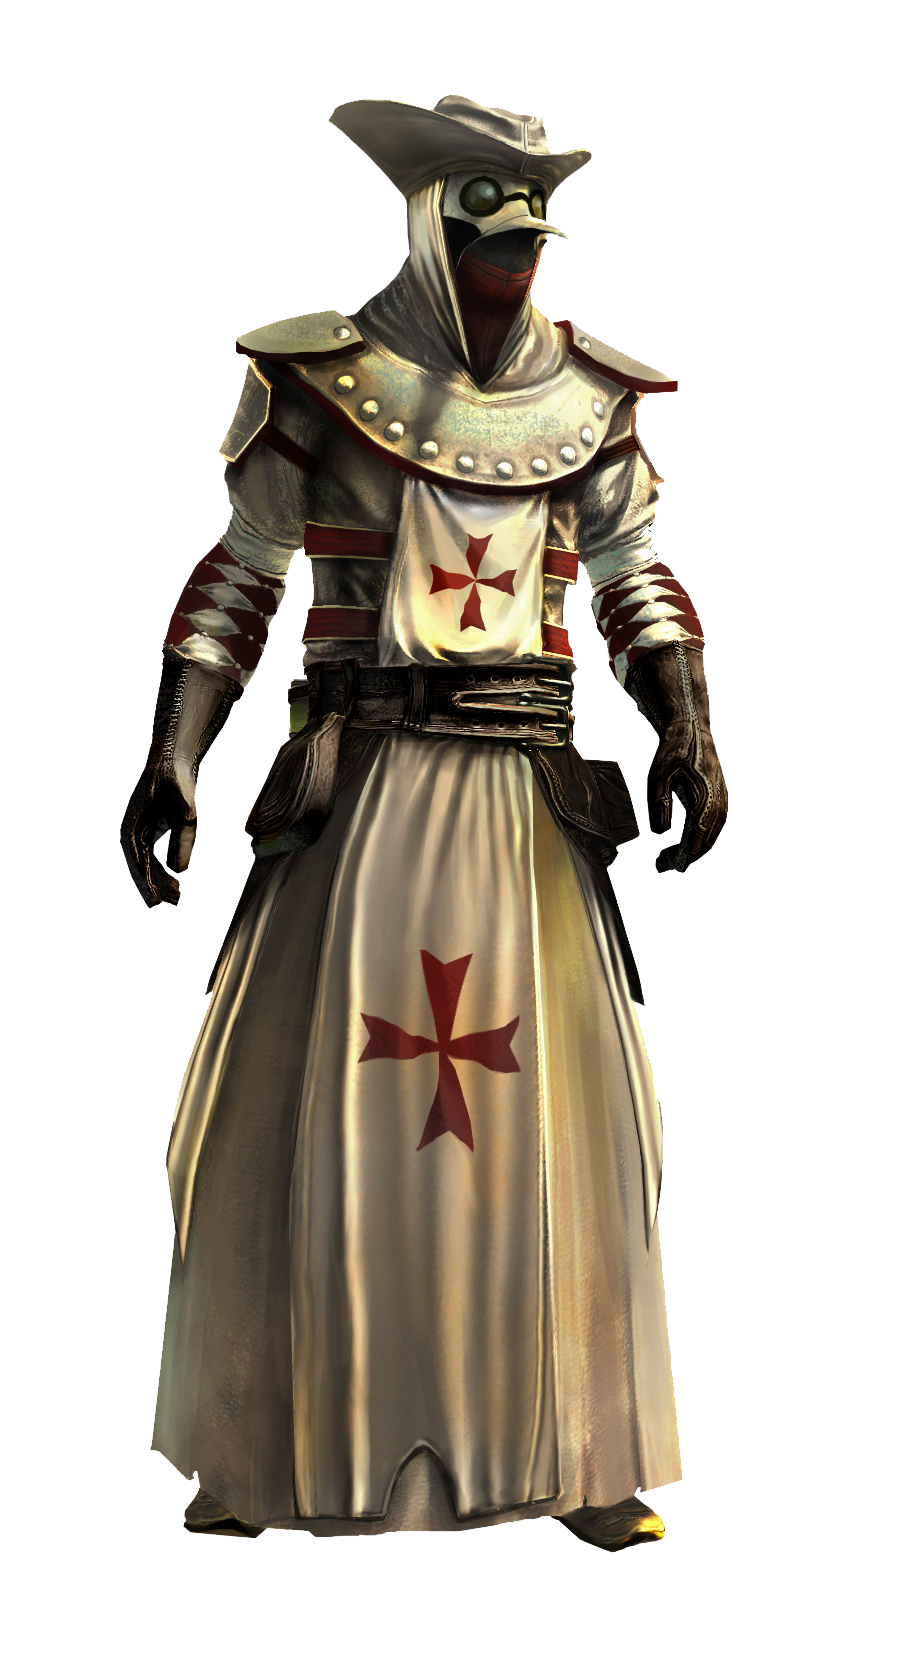 Ottoman doctor assassin 39 s creed wiki fandom powered by wikia - Ottoman empire assassins creed ...